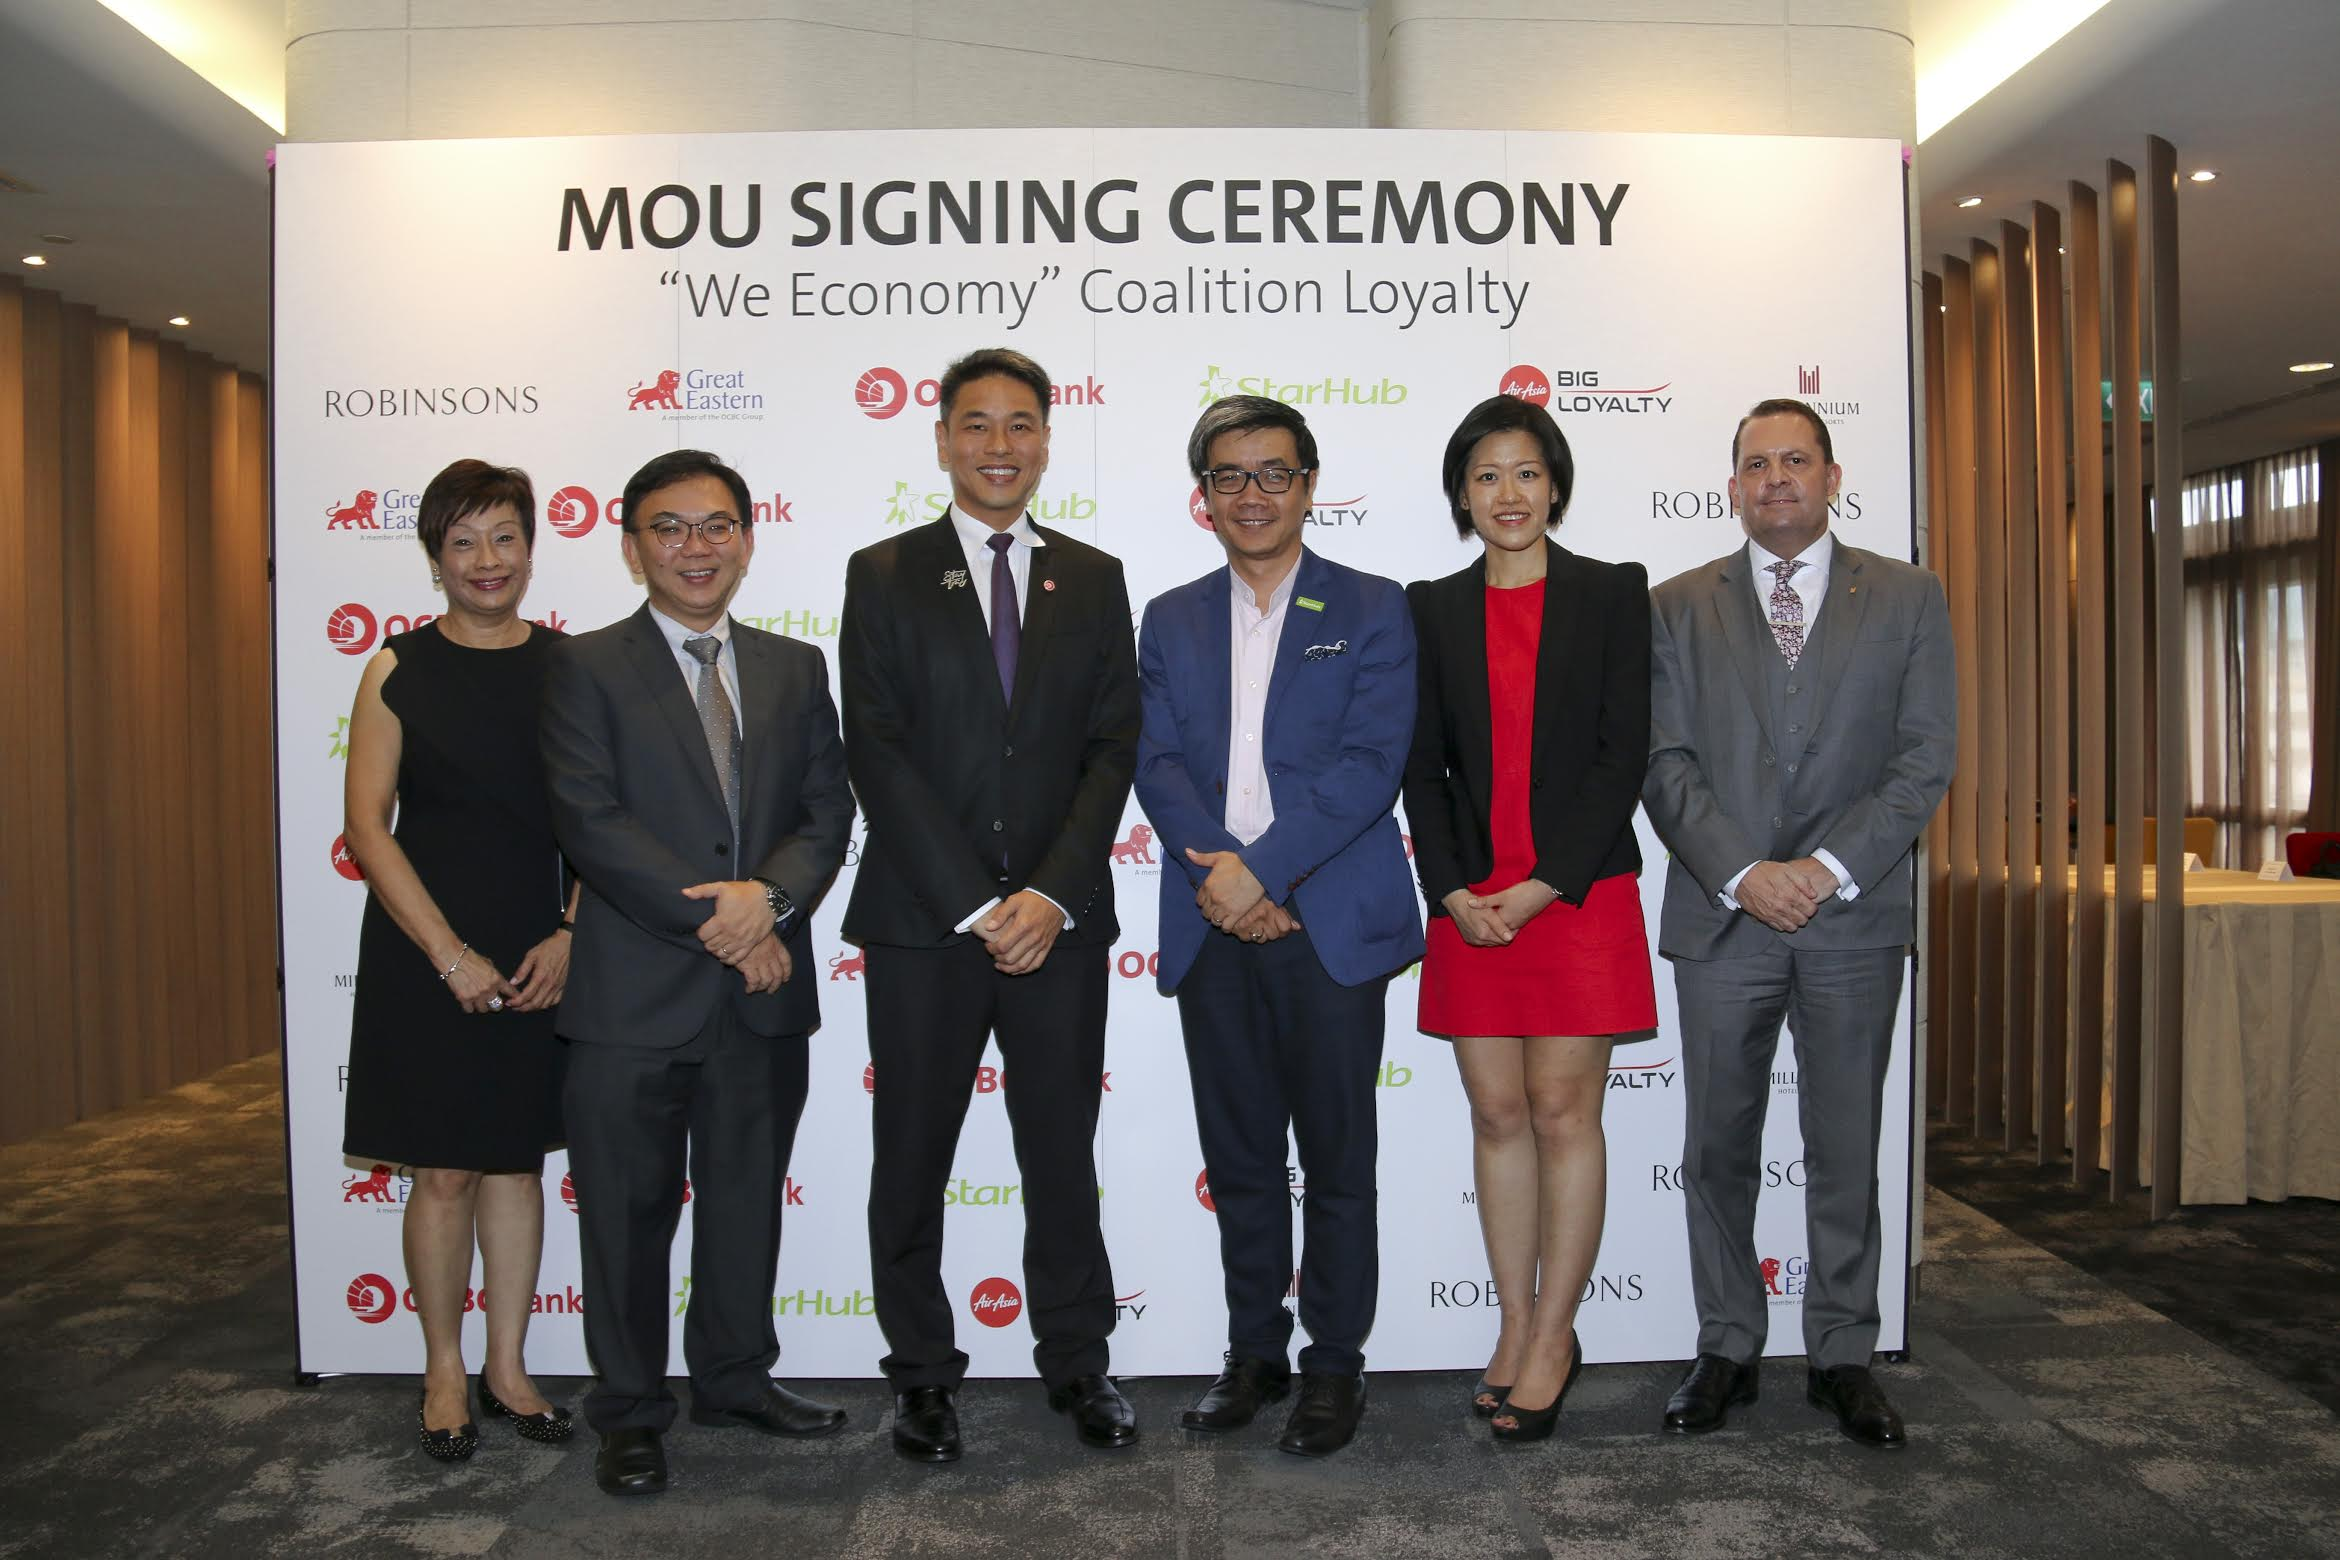 Ms Donna Chua, Group Marketing Director, Robinsons; Mr Ryan Cheong, Managing Director, Strategy & Transformation, Great Eastern; Mr Desmond Tan, Head, Group Lifestyle Financing, OCBC Bank; Mr Howie Lau, Chief Marketing Officer, StarHub; Ms Heather Goh, Chief Marketing Officer, AirAsia BIG Loyalty; Mr Lee Richards, Vice President, Operations, South East Asia, Millennium Hotels and Resorts. Photo courtesy: OCBC